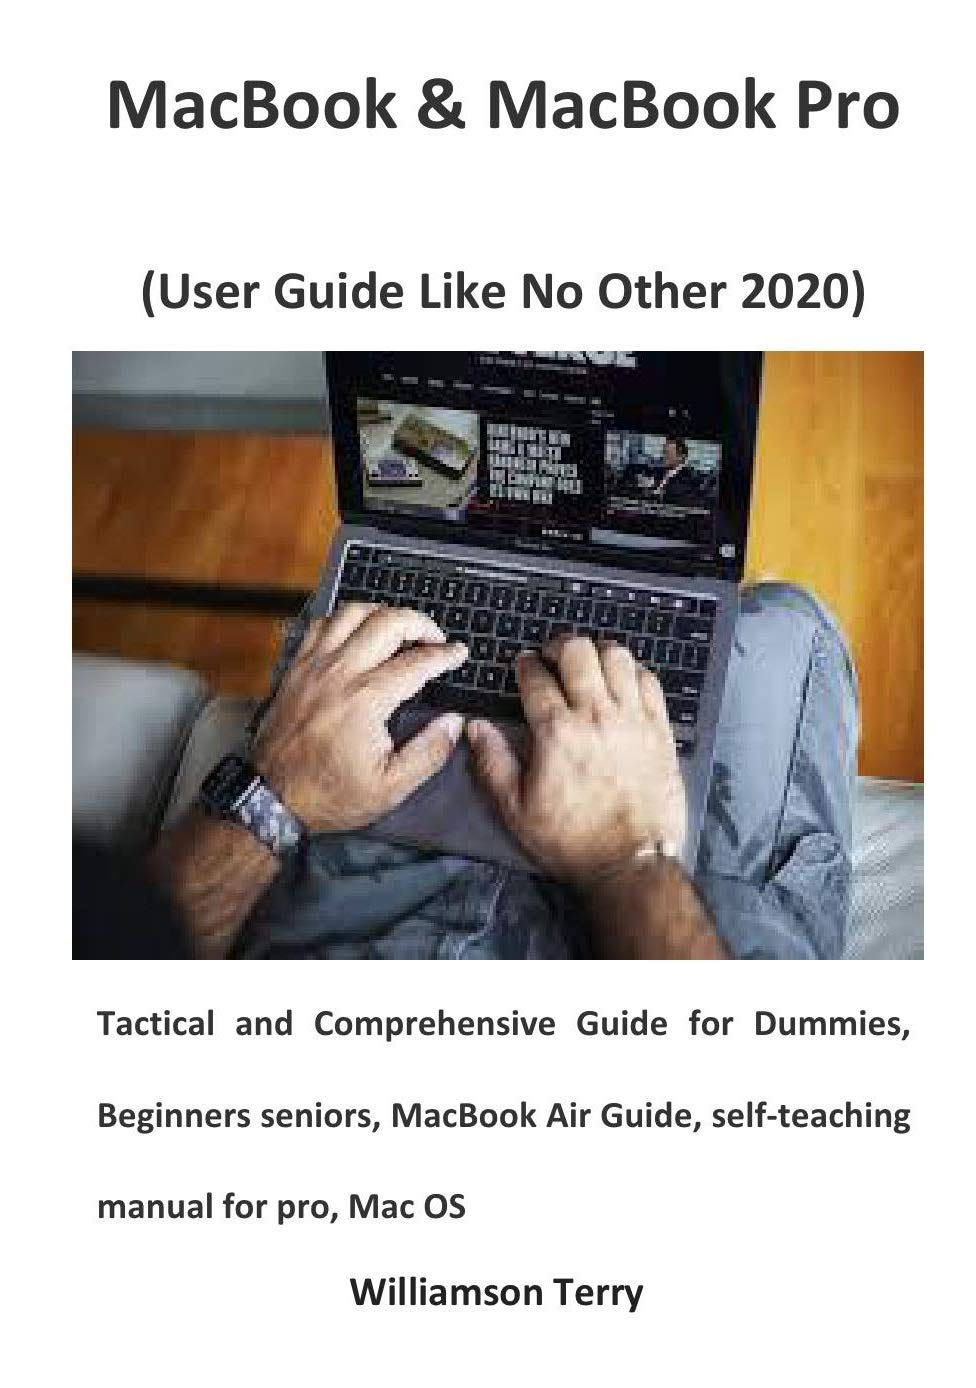 MacBook & MacBook Pro (User Guide Like No Other 2020): Tactical and Comprehensive Guide for Dummies, Beginners seniors, MacBook Air Guide, self-teaching manual for pro, Mac OS